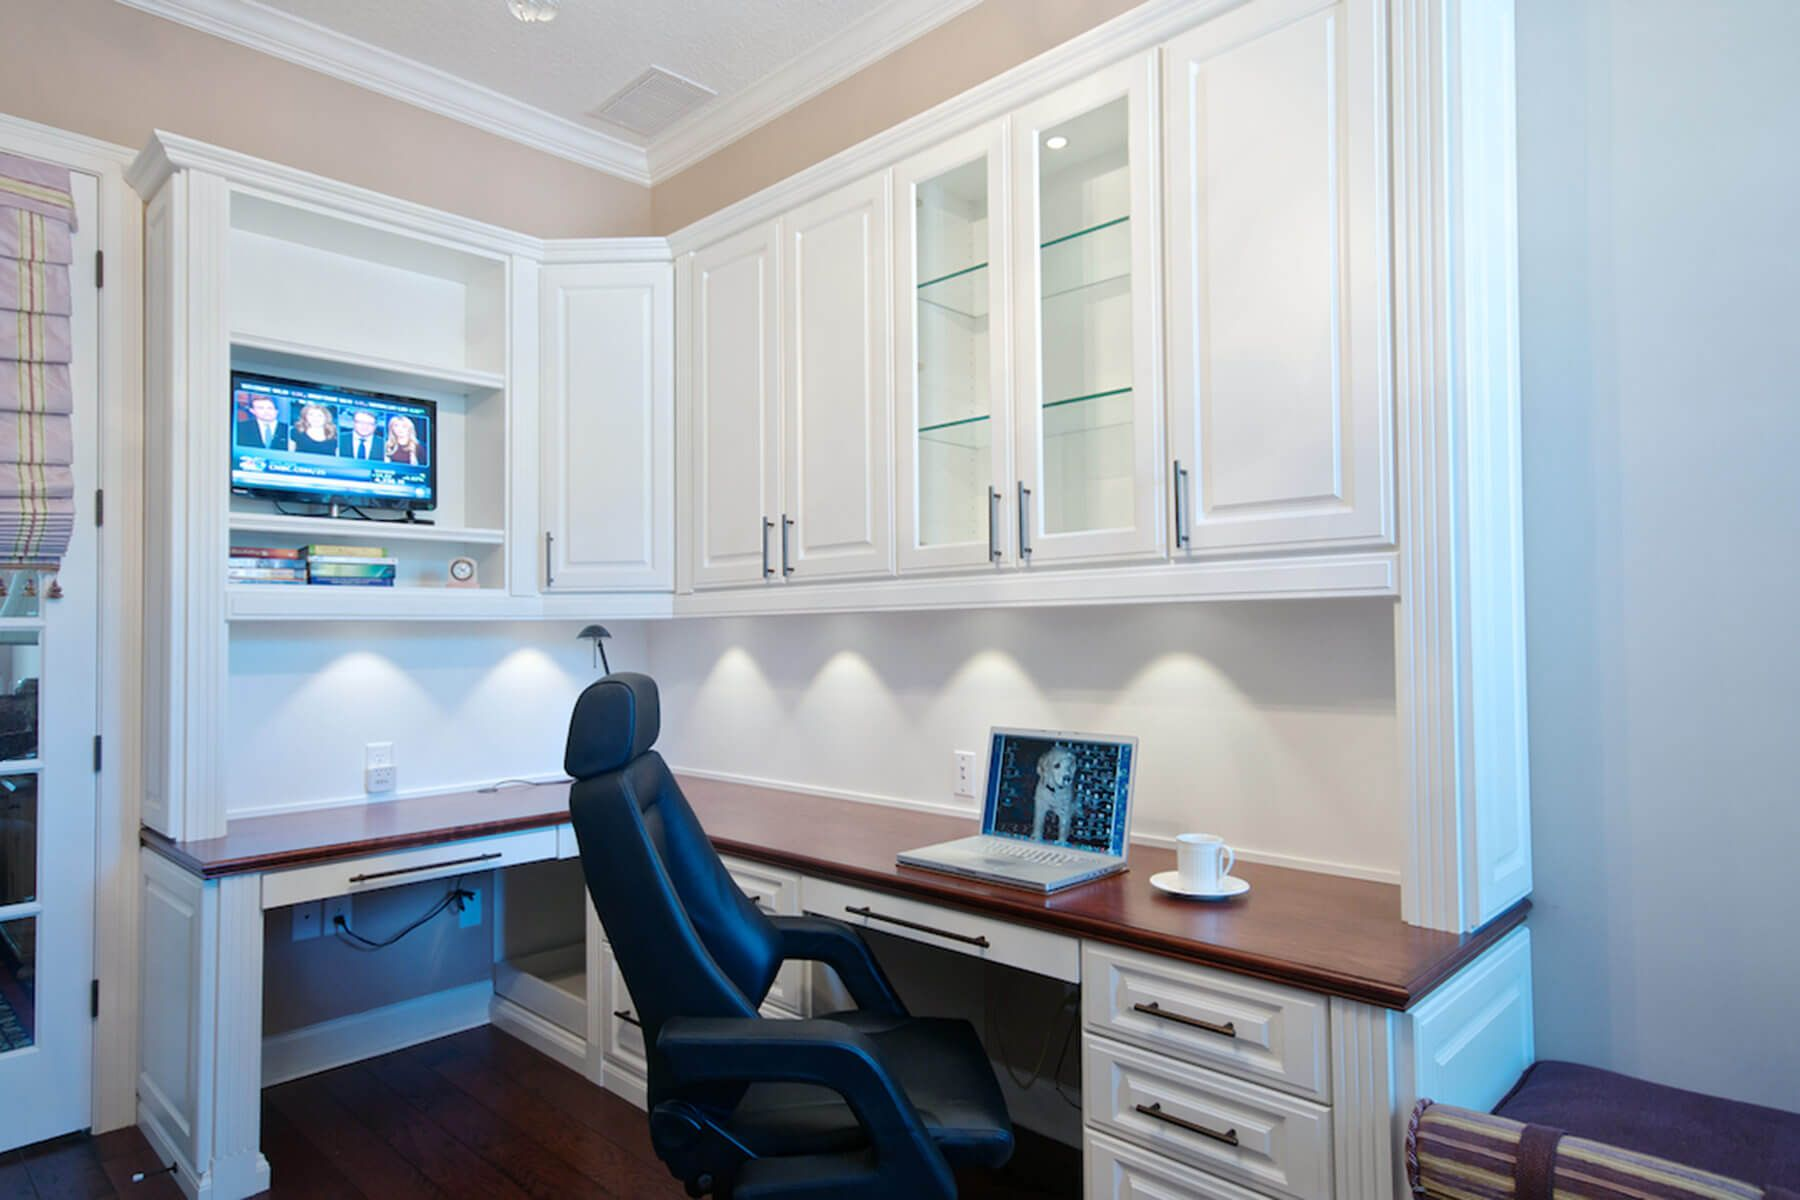 350 Home Office Ideas for 2018 (Pictures) | Cupboard, Desks and ...